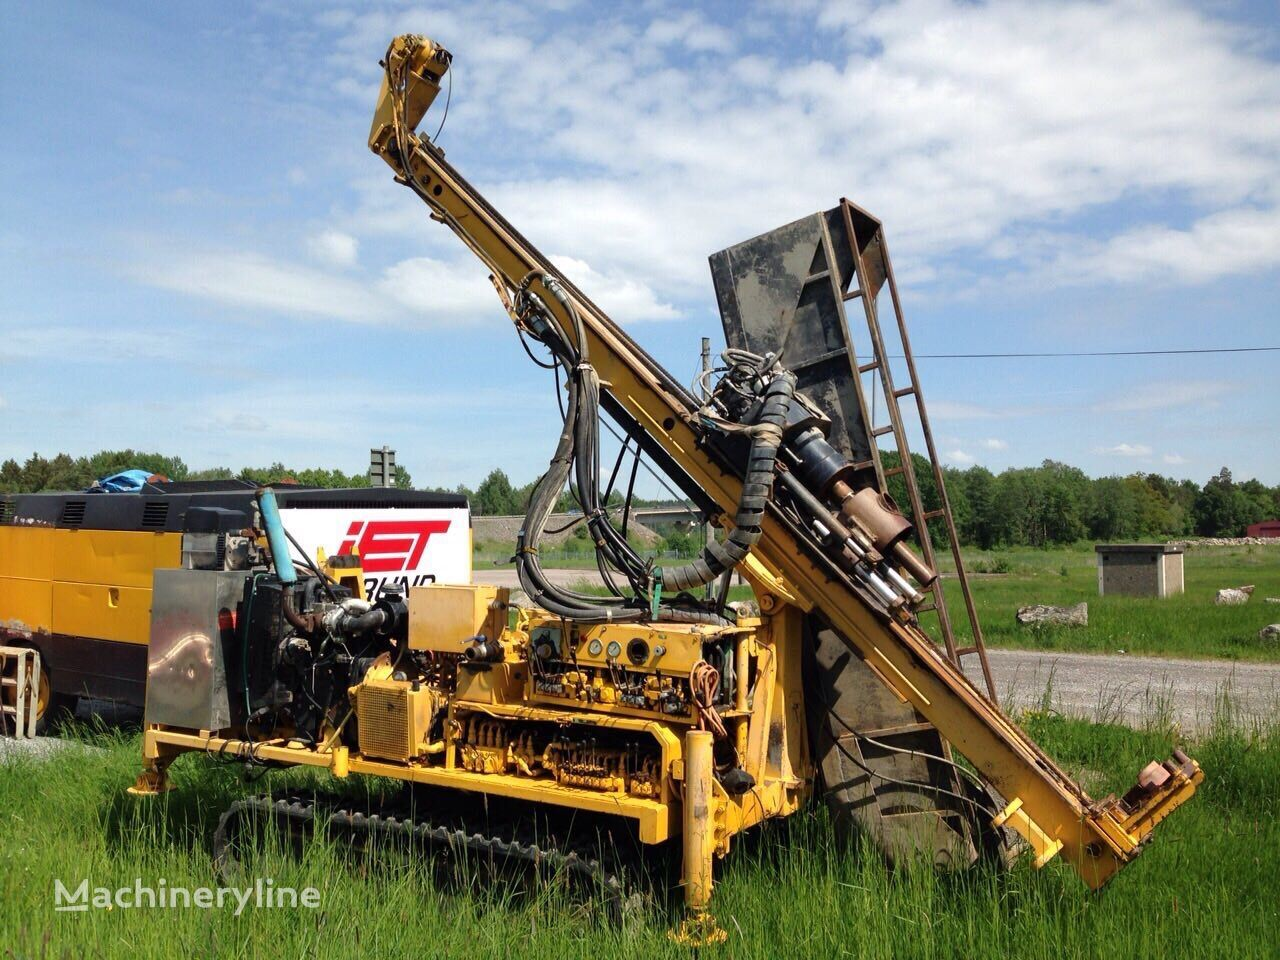 IBEX 350 WED drilling rig